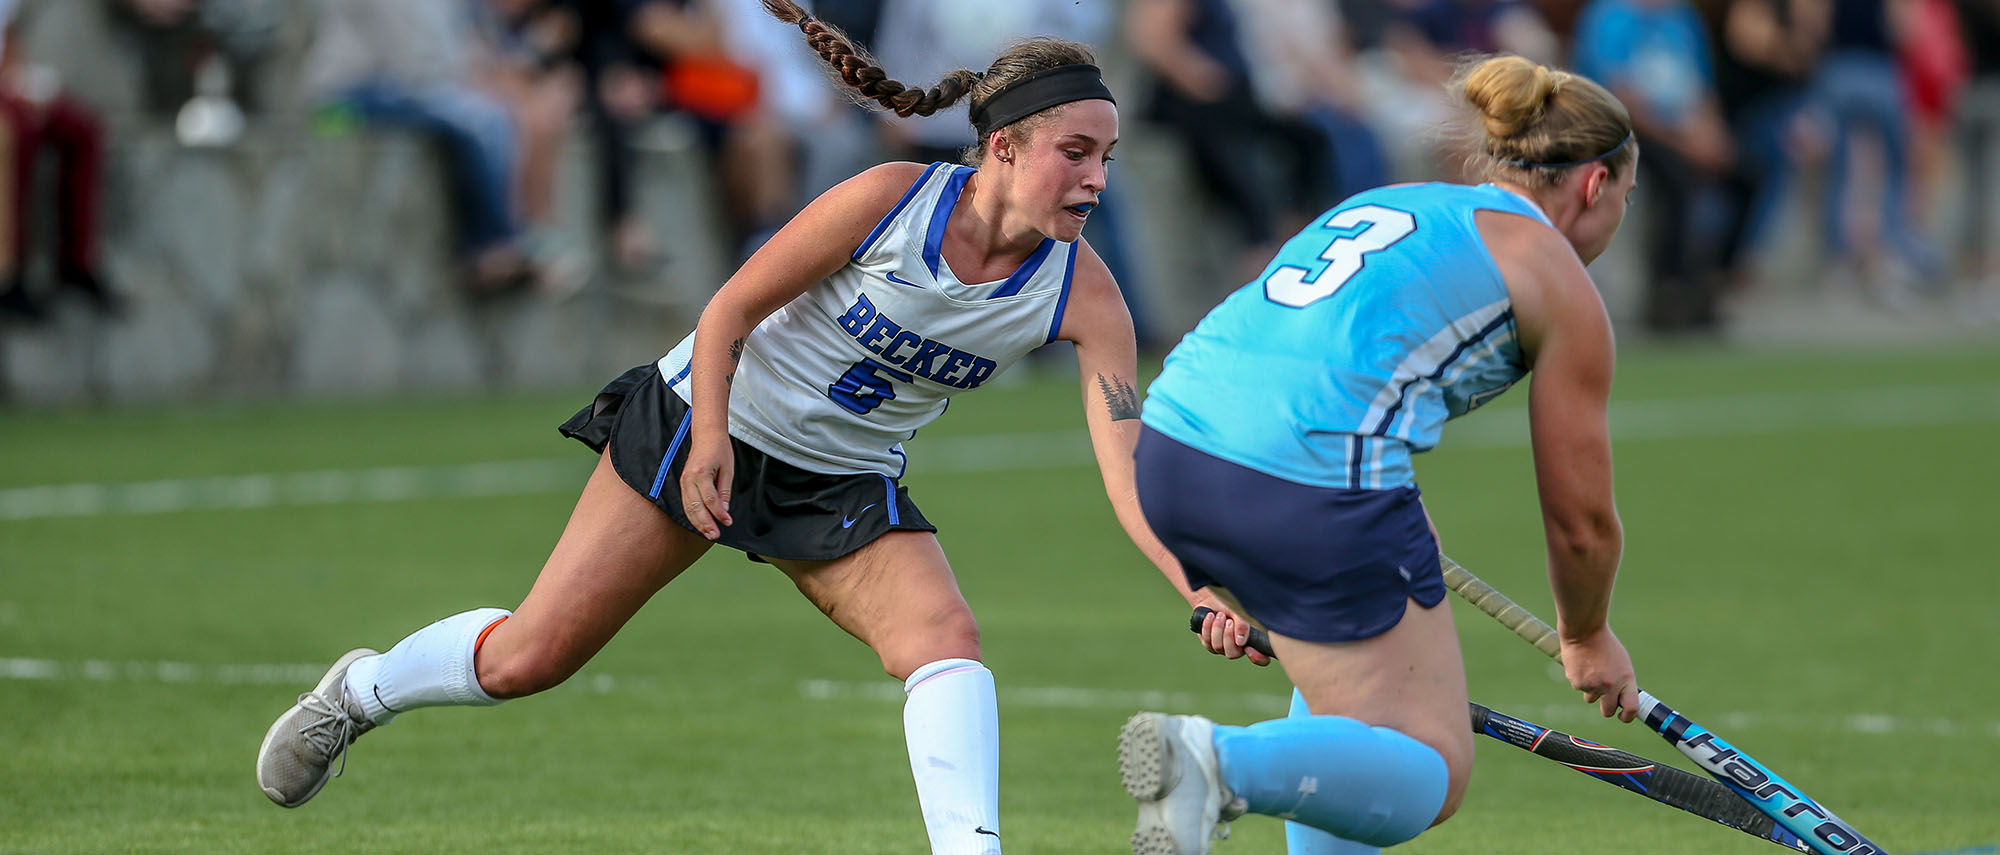 Amy Cooper scored a goal in a 6-1 loss to Colby-Sawyer on Saturday afternoon.